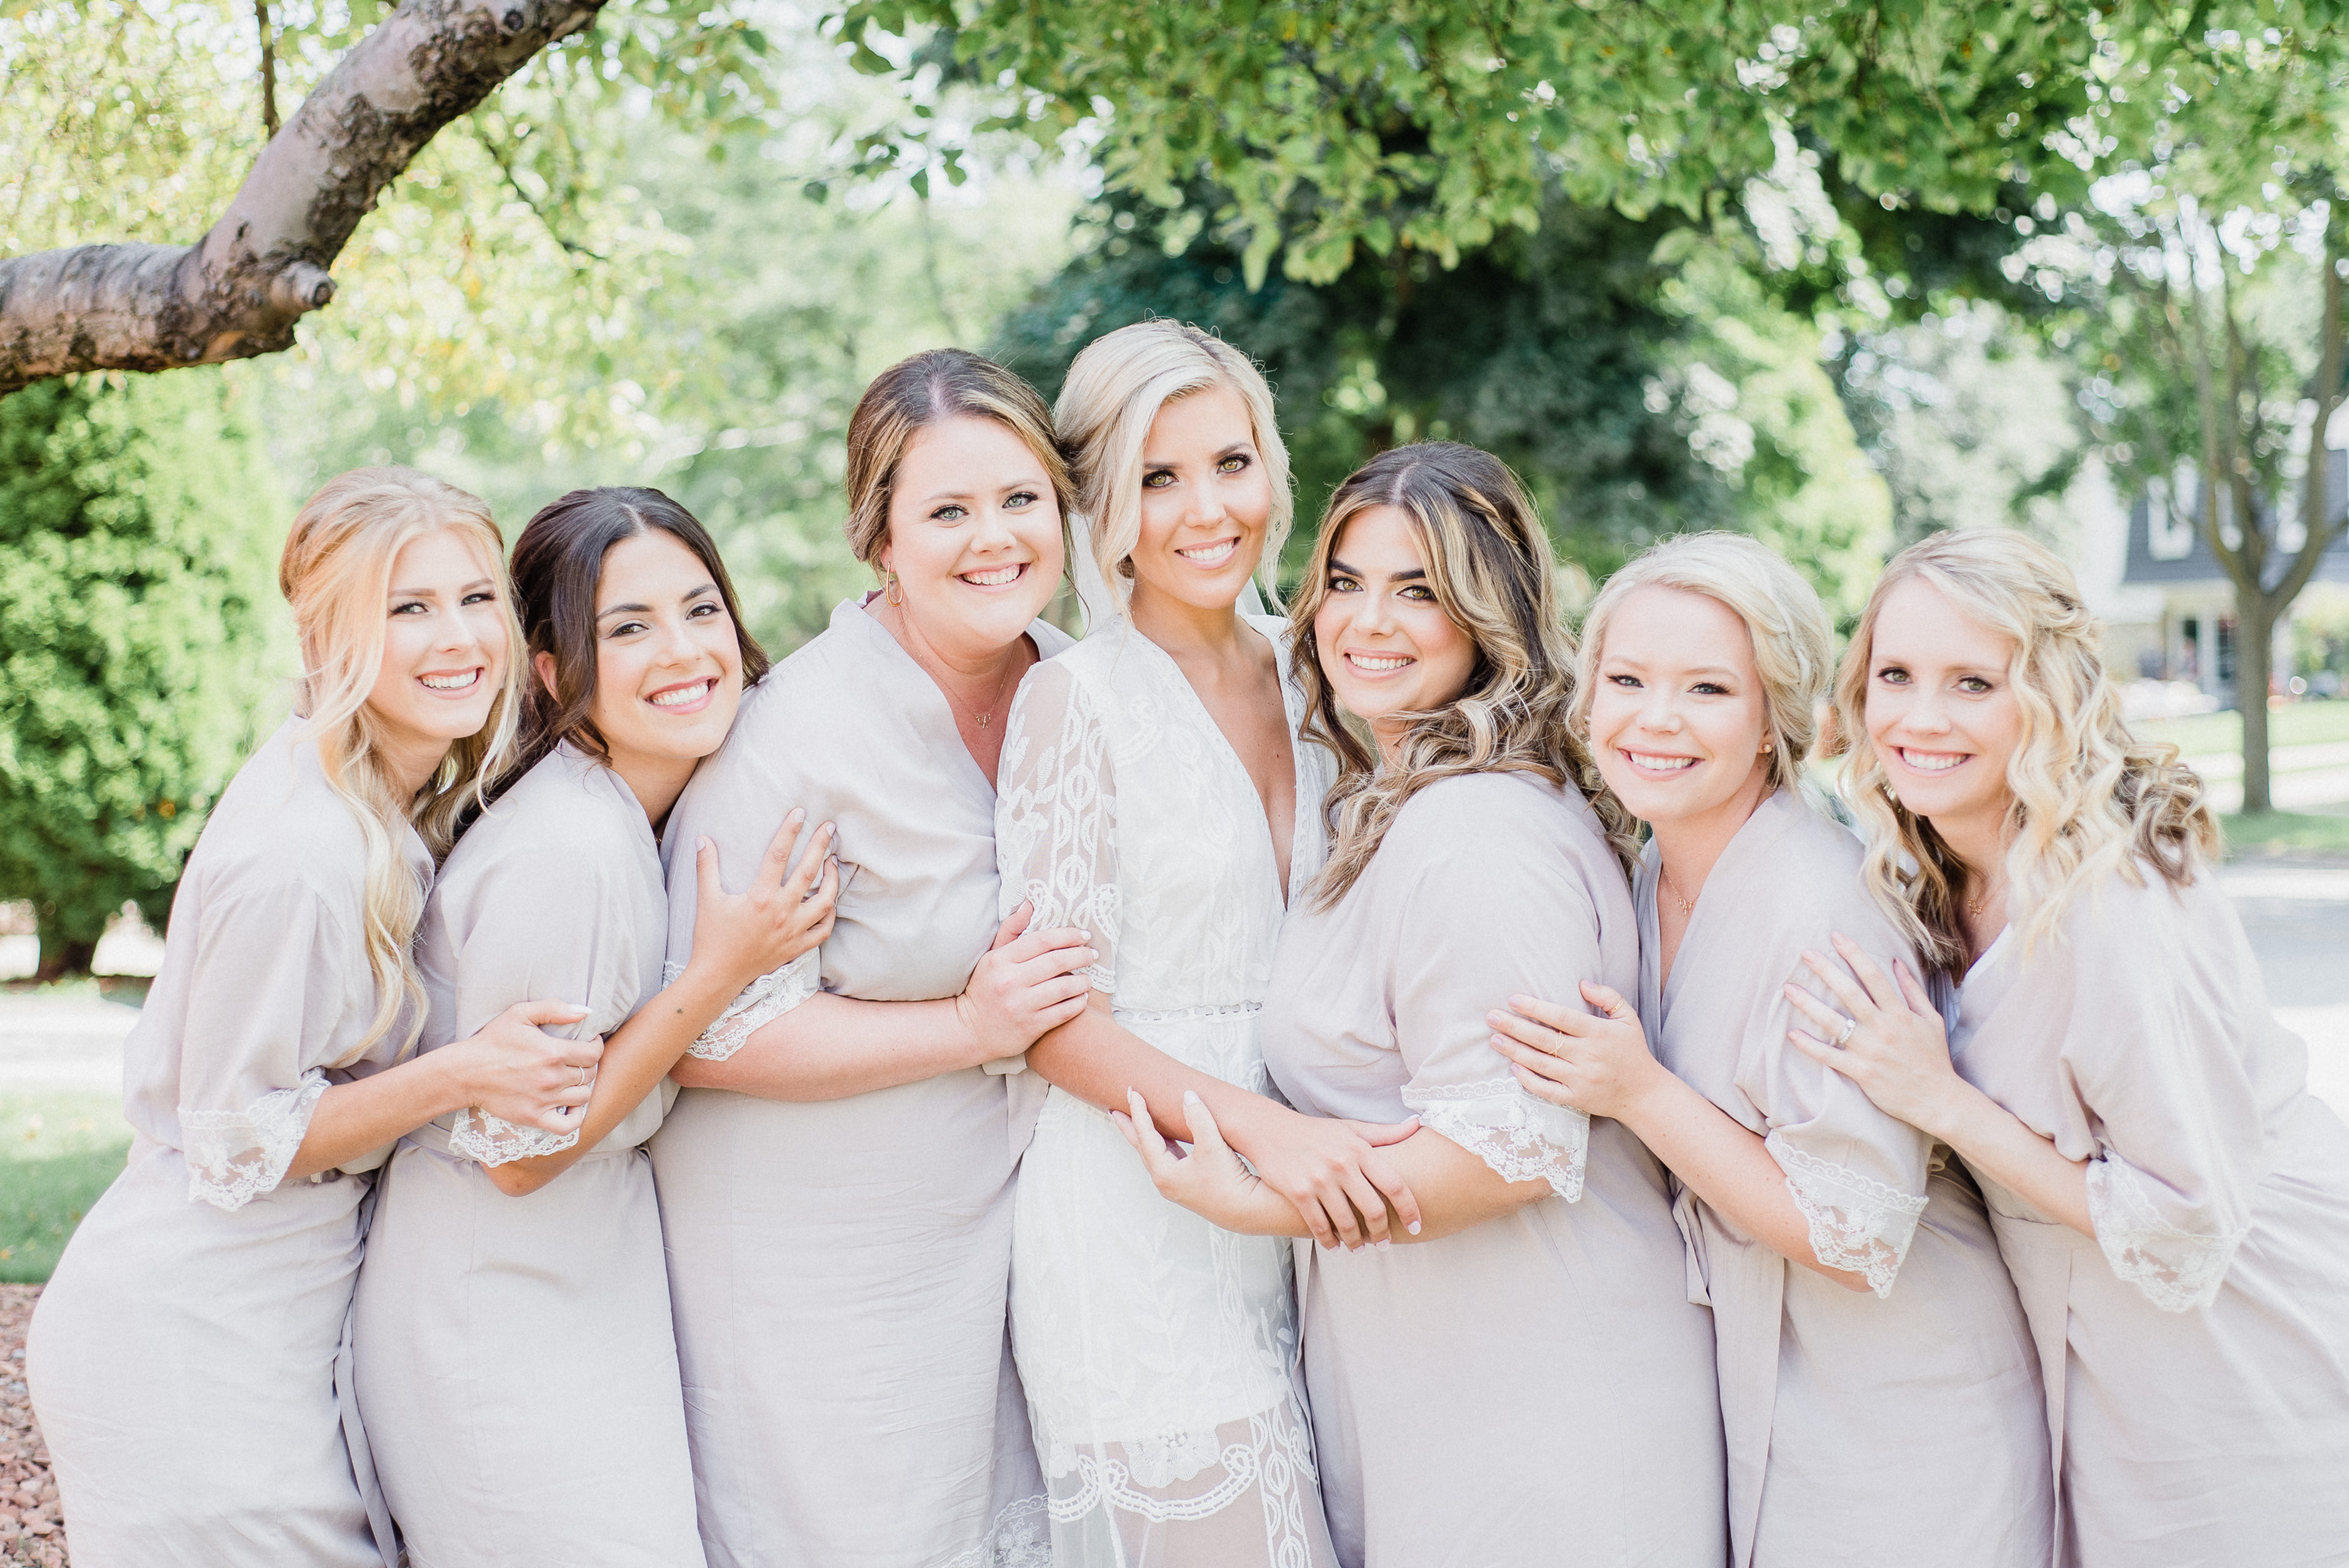 Lace Trimmed Bridesmaids robes by Jenn Kavanagh Photography